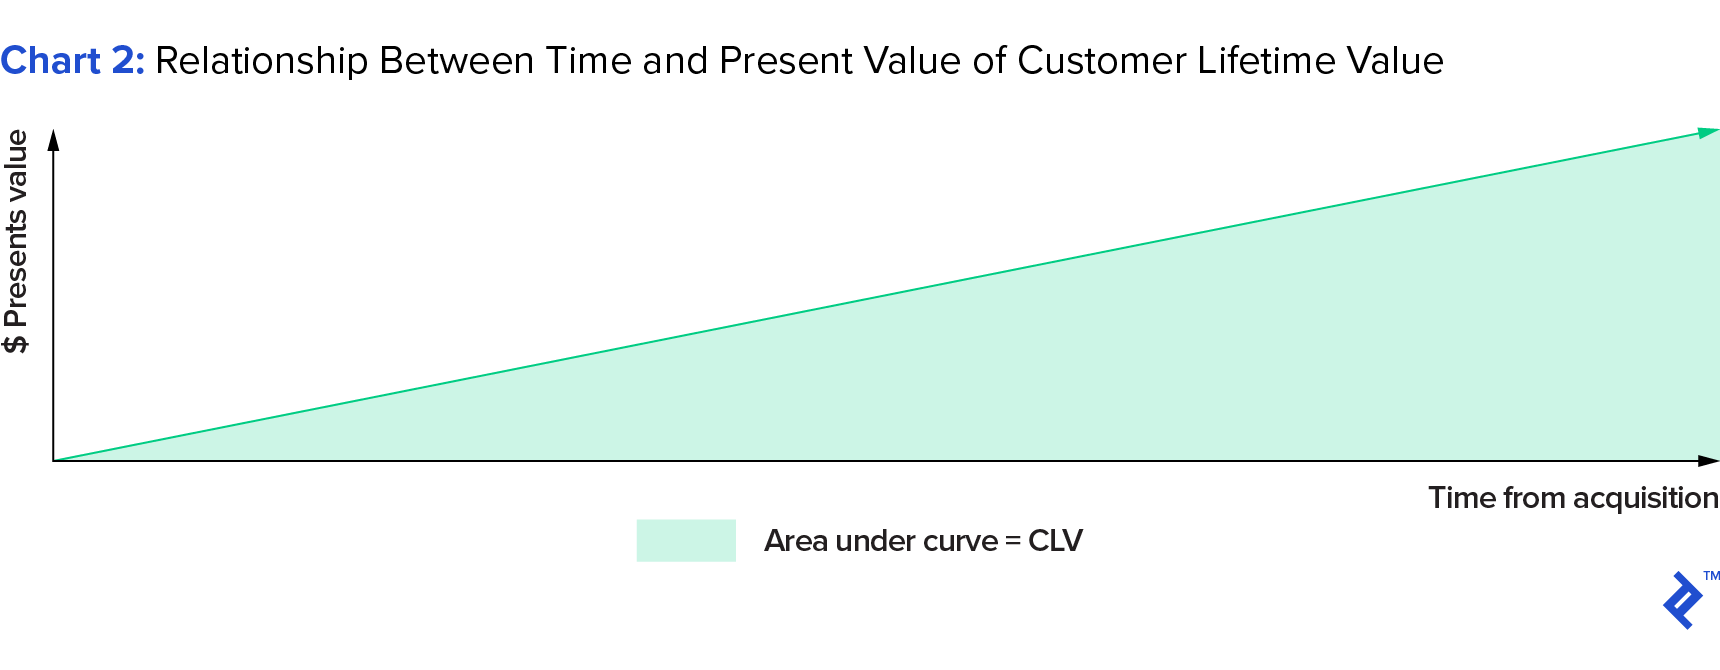 chart visualizing the relationship between time and present value of customer lifetime value